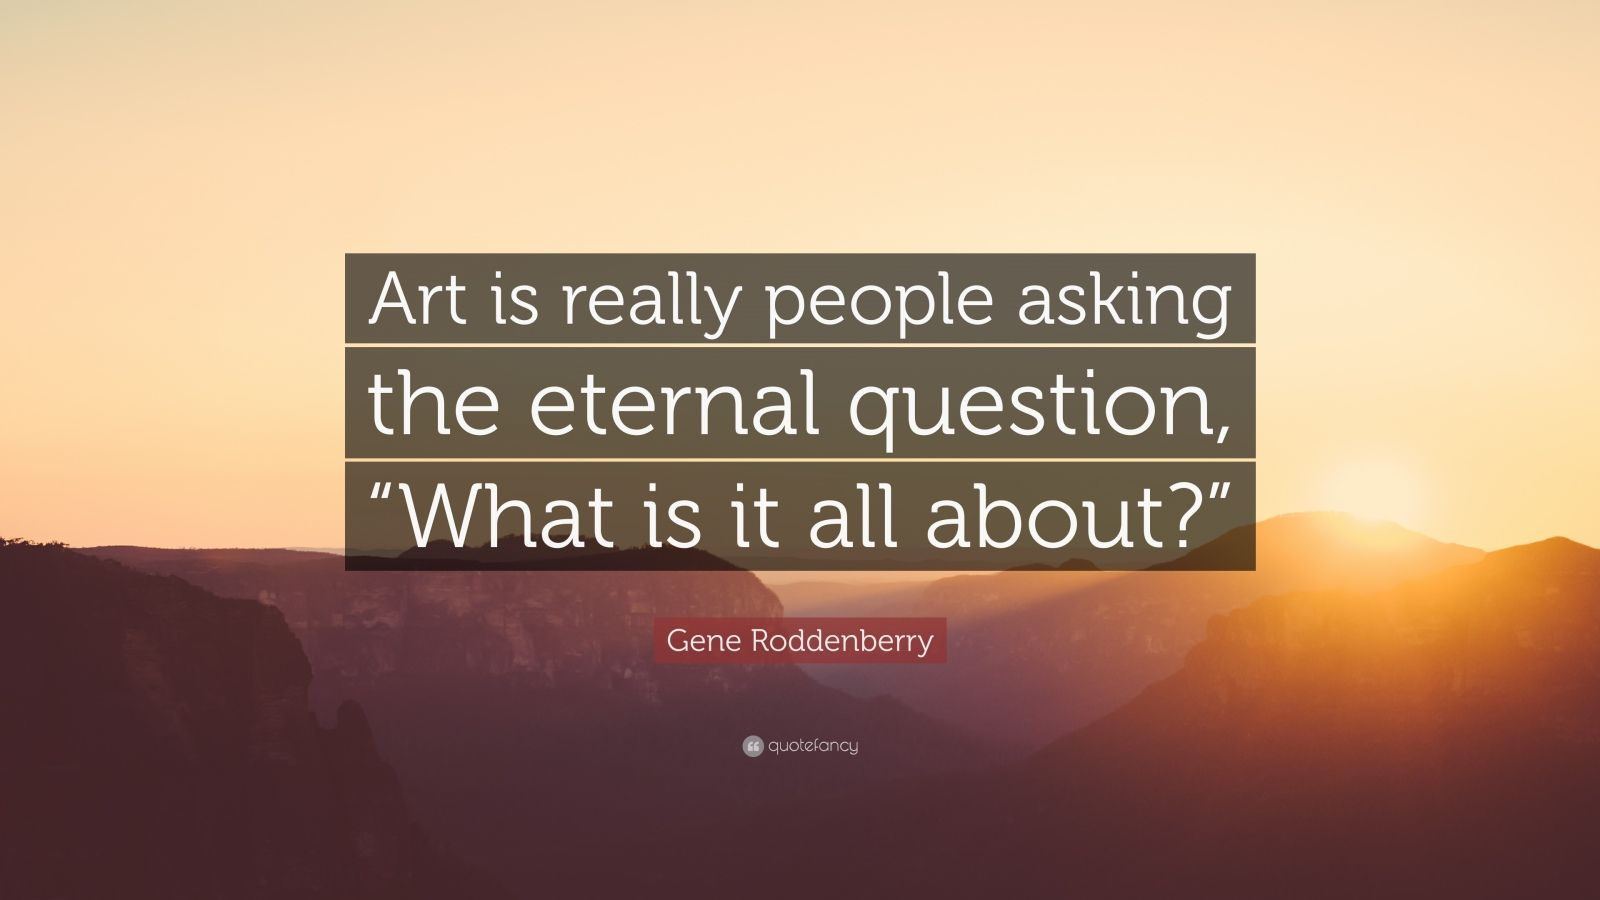 """Gene Roddenberry Quote: """"Art is really people asking the eternal question, """"What is it all about?"""""""""""